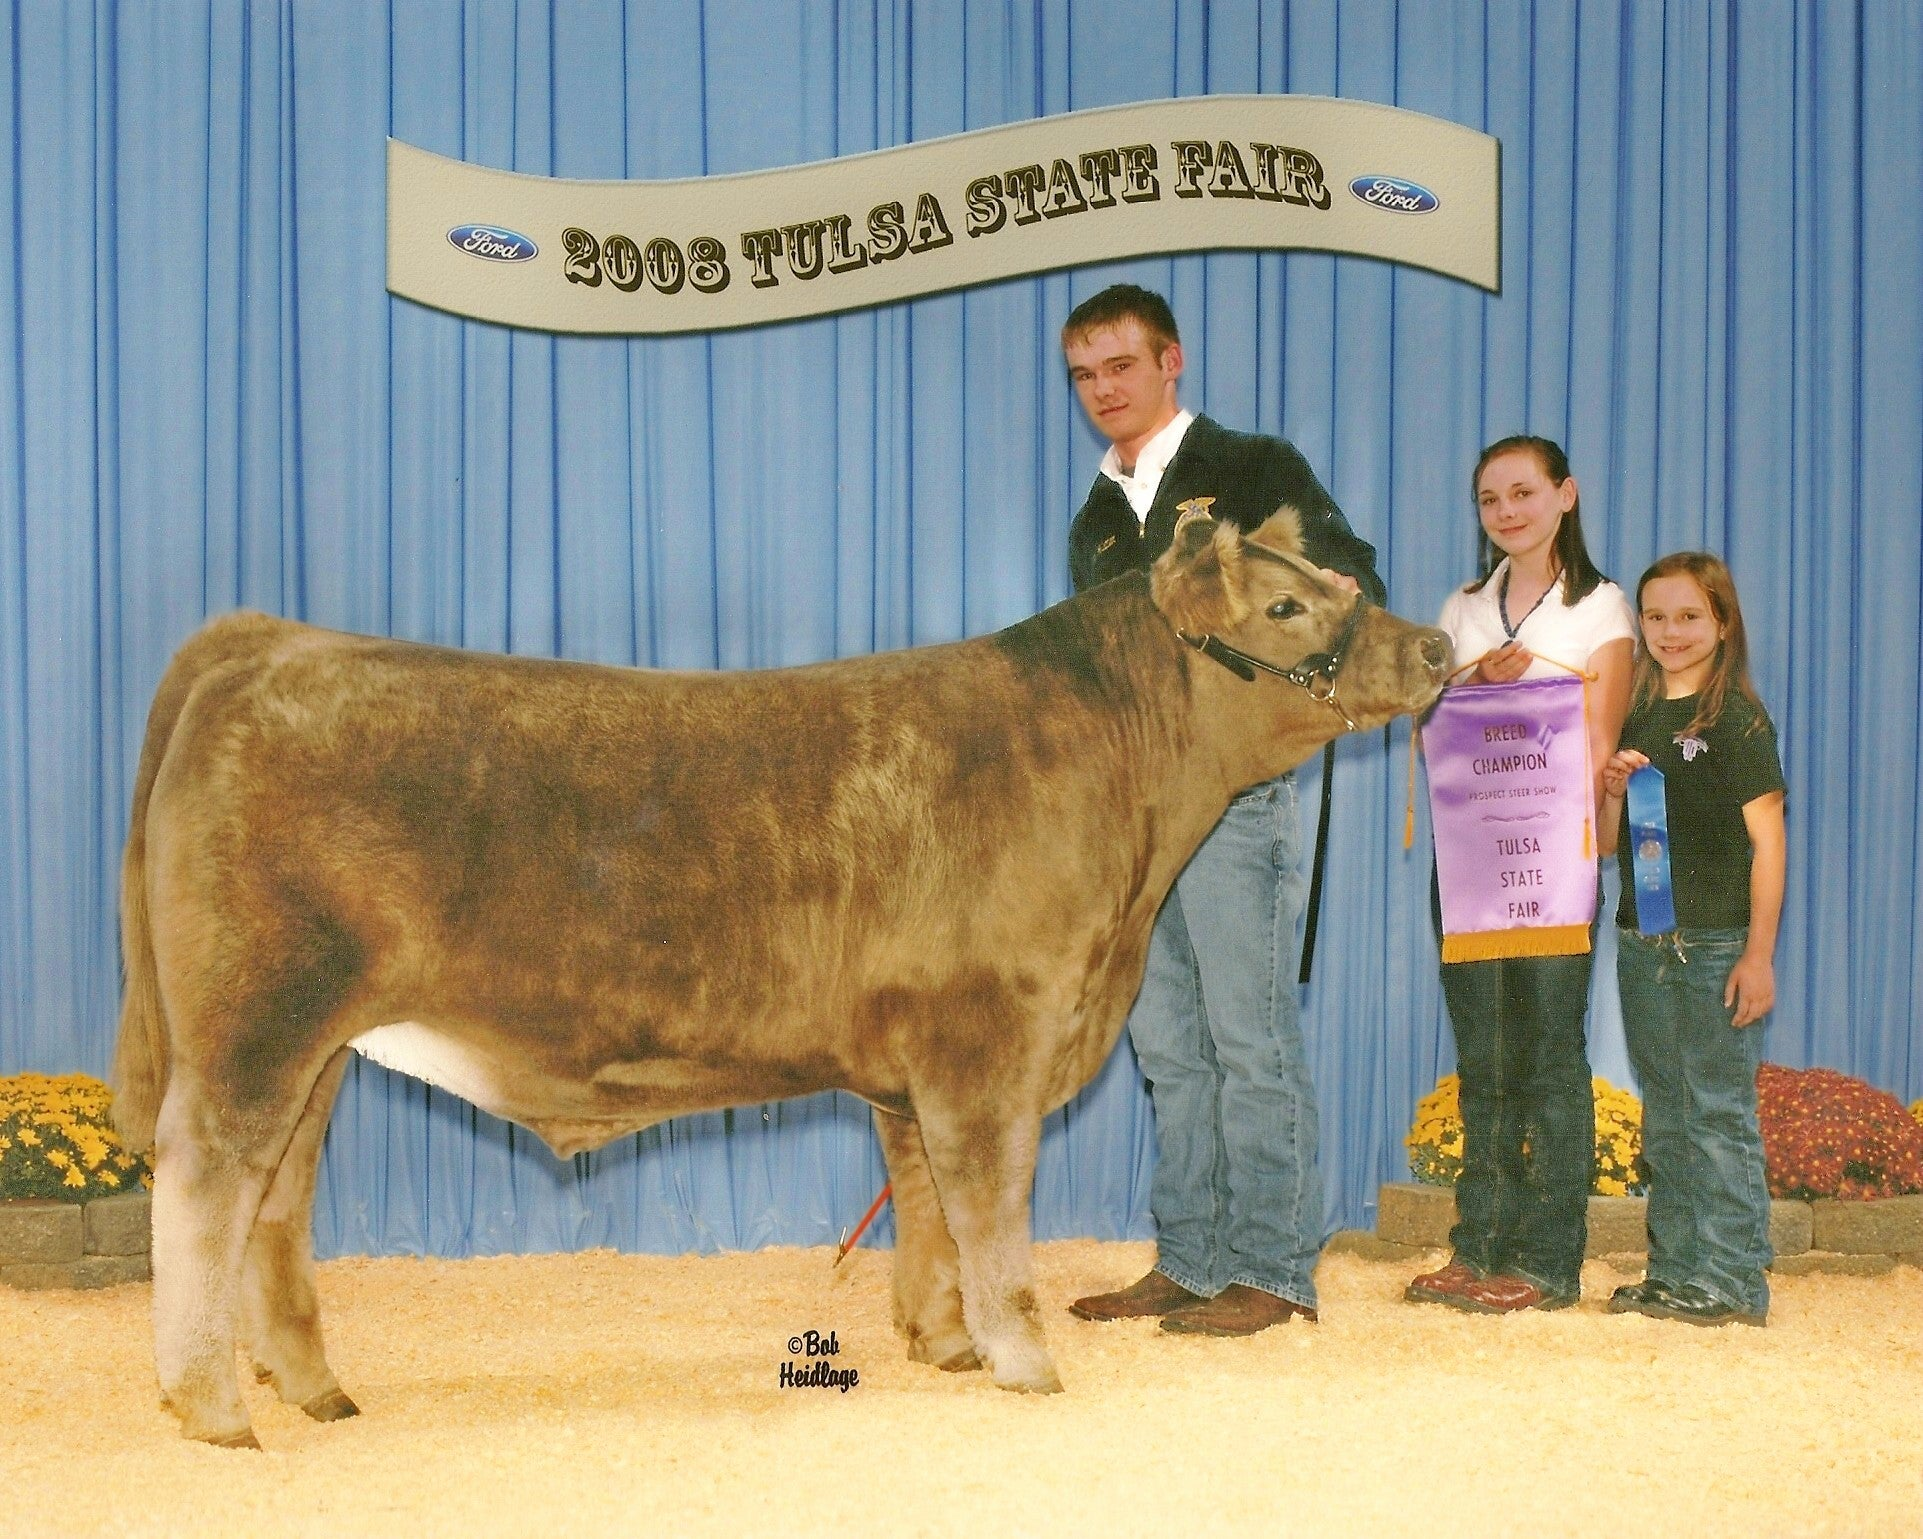 Our Military Kids awards grants to children of service members that pay for extracurricular activities. One grant helped a recipient in Oklahoma raise an award-winning steer. (Photo: Linda Davidson/Our Military Kids)